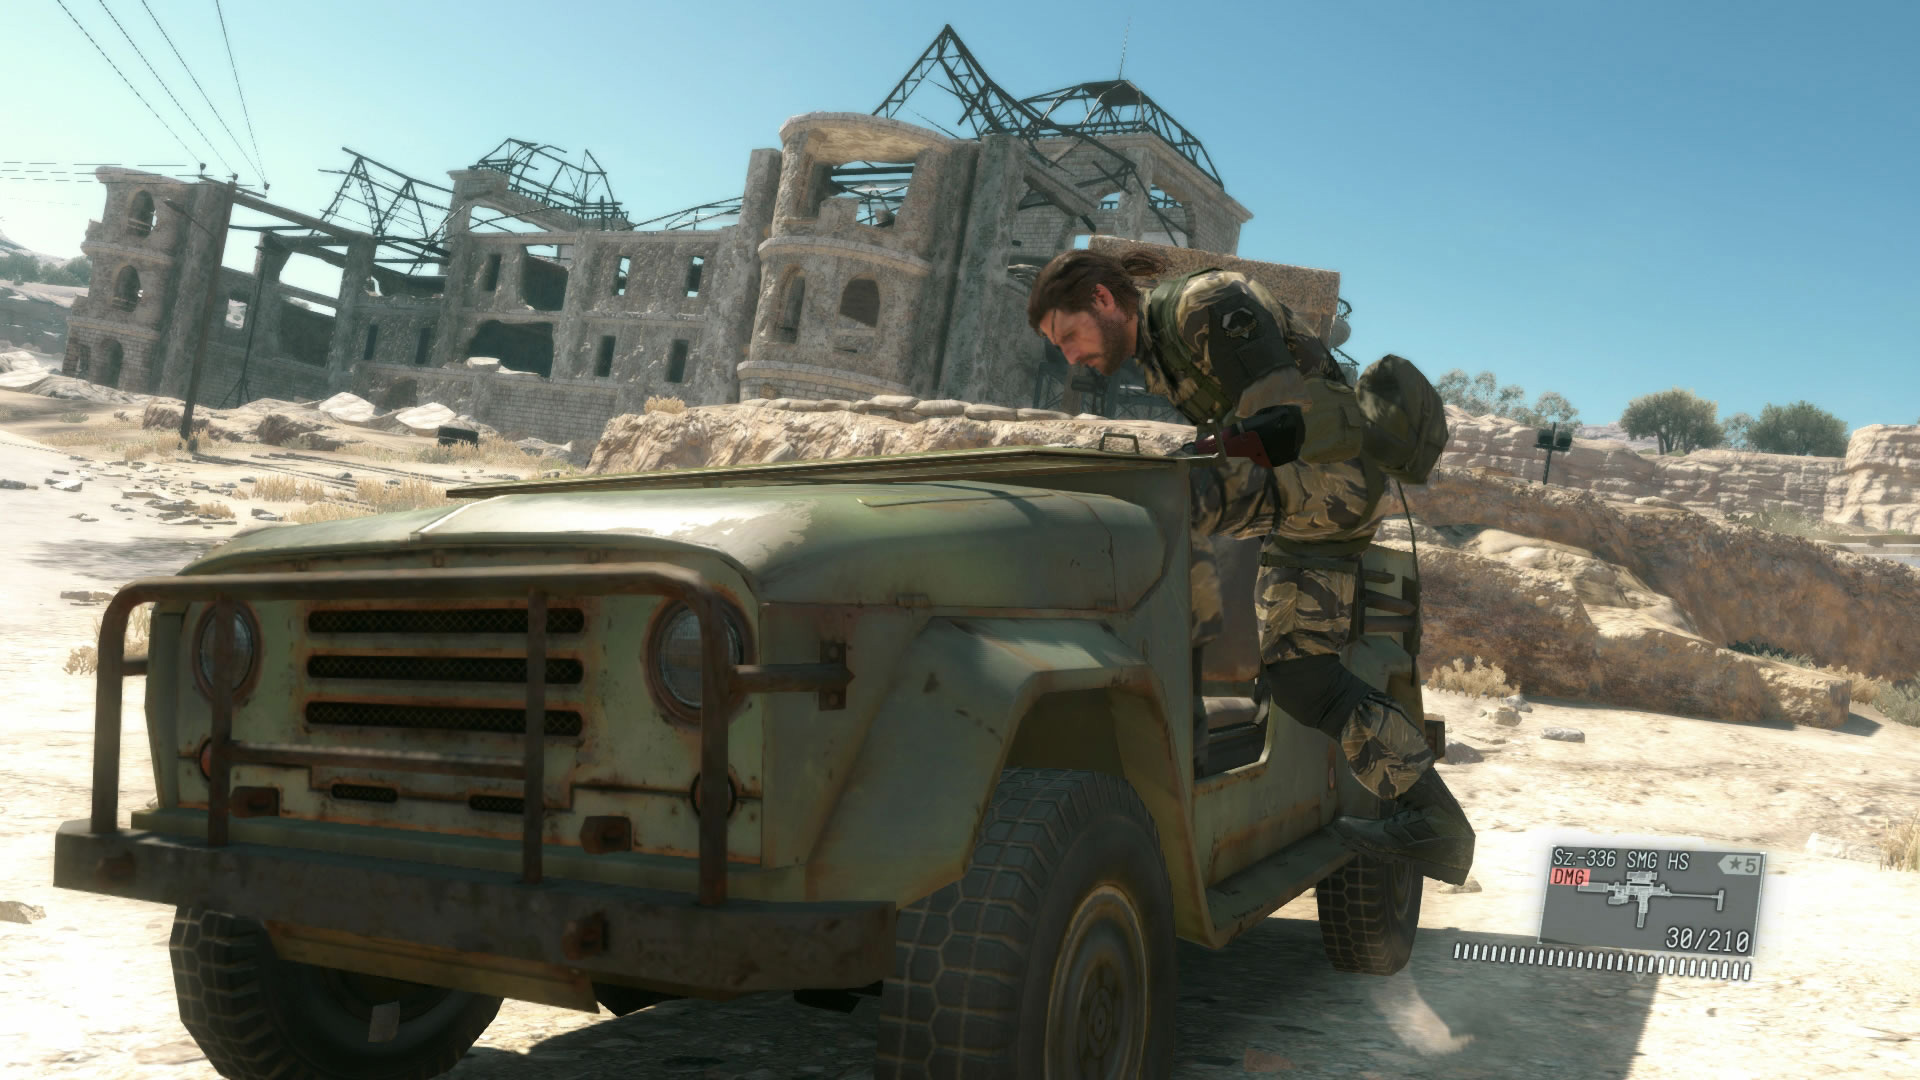 Metal-Gear-Solid-V-The-Phantom-Pain-E3-2015-Screen-Big-Boss-Getting-into-Jeep